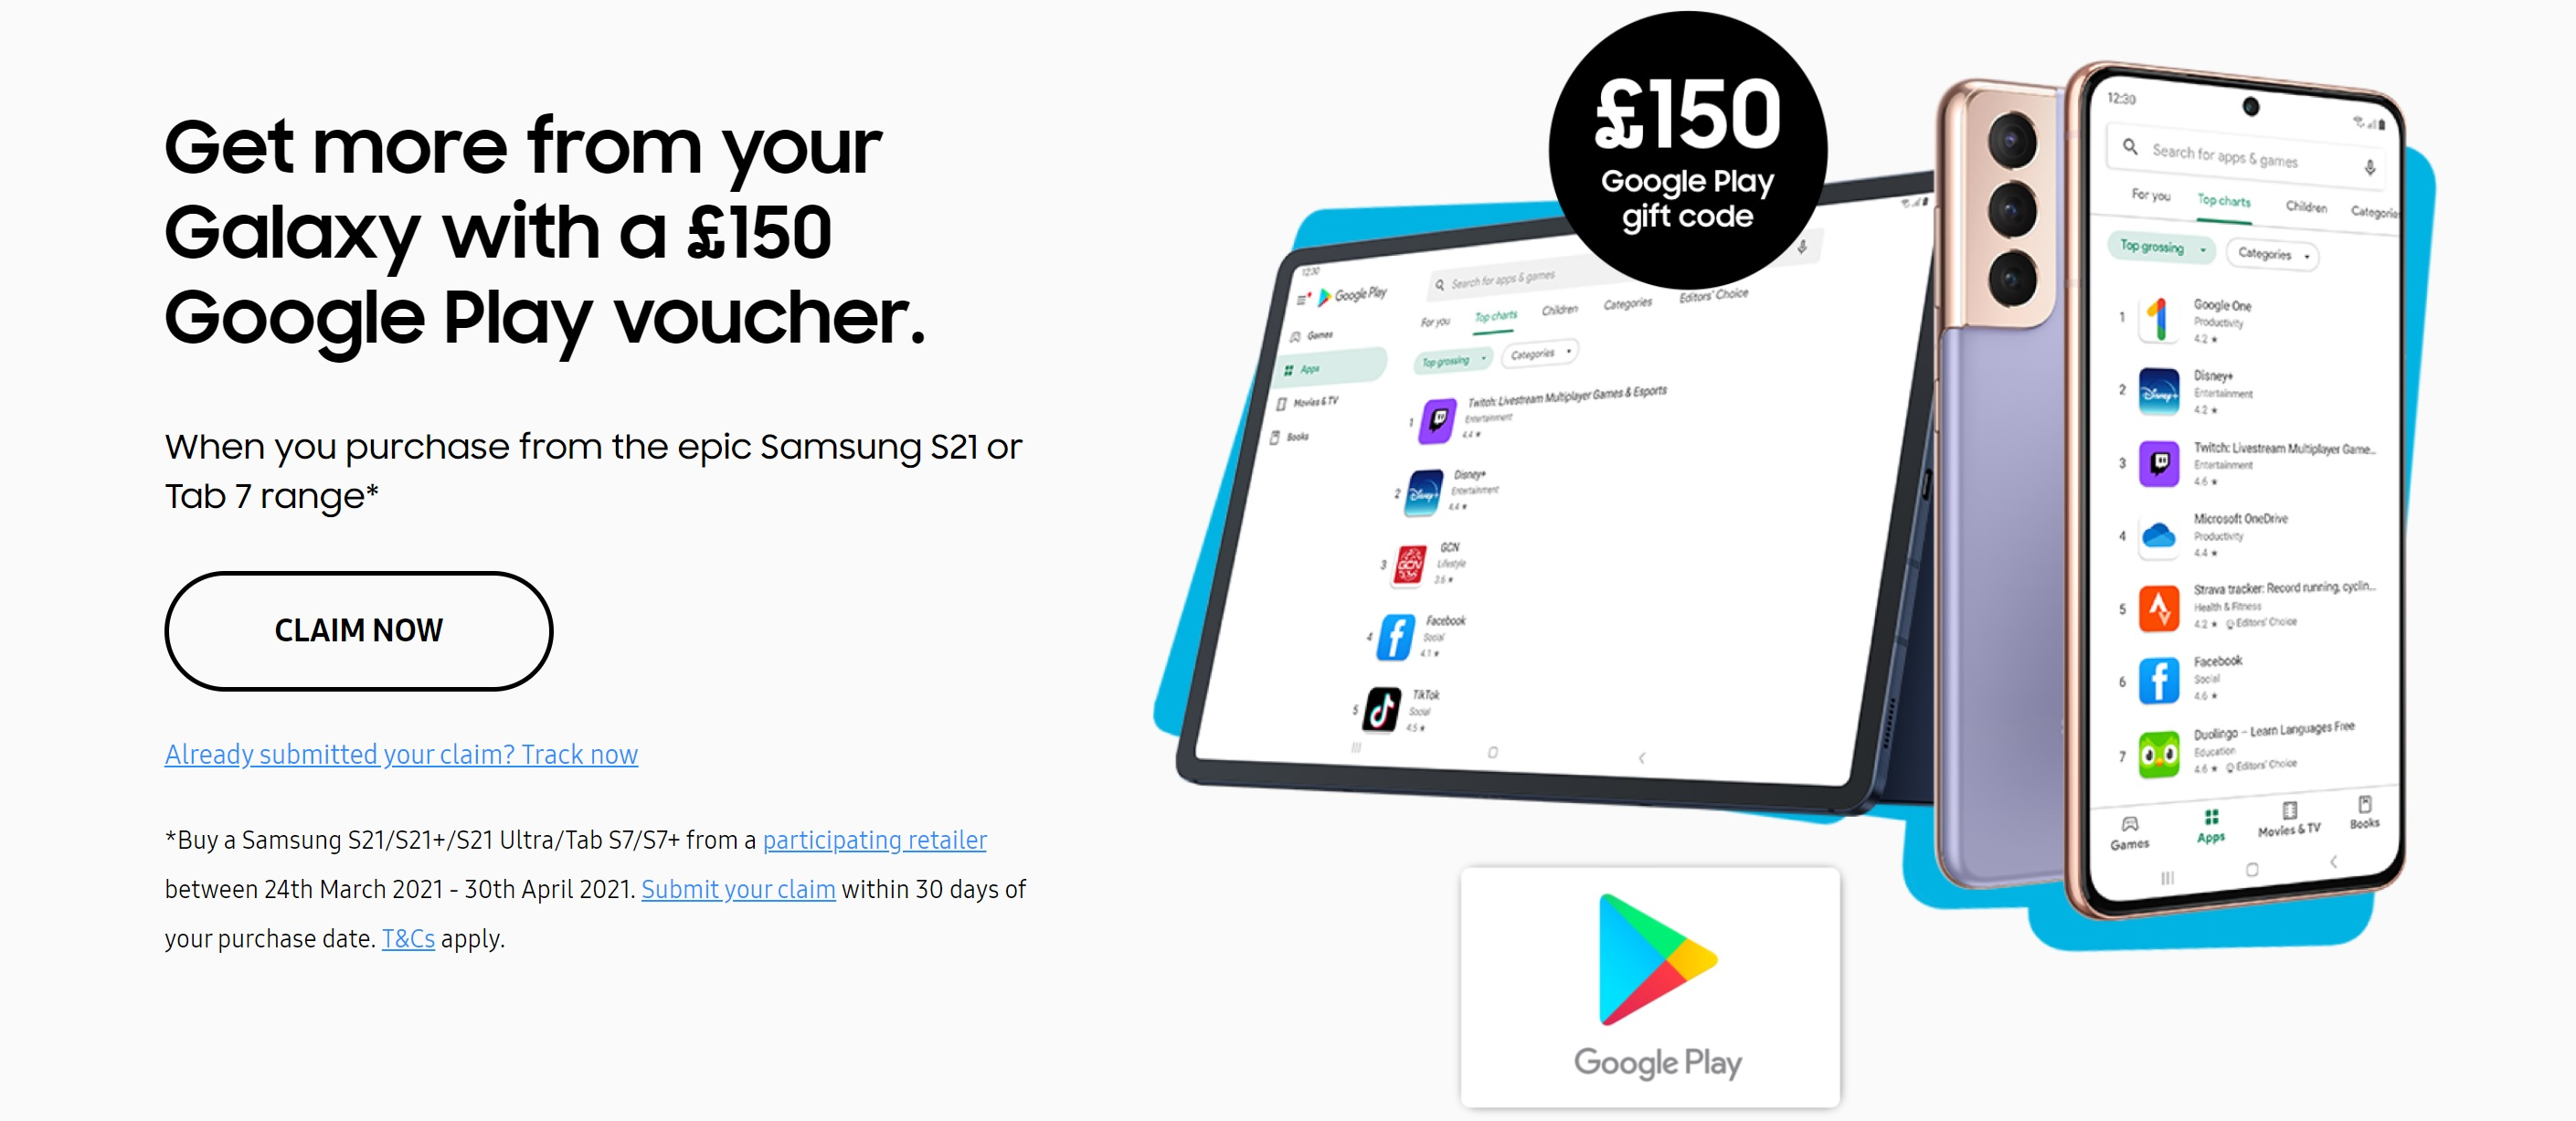 Claim Free £150 Voucher Code for Google Play with Samsung S21, S21+ and S21 Ultra contract deals